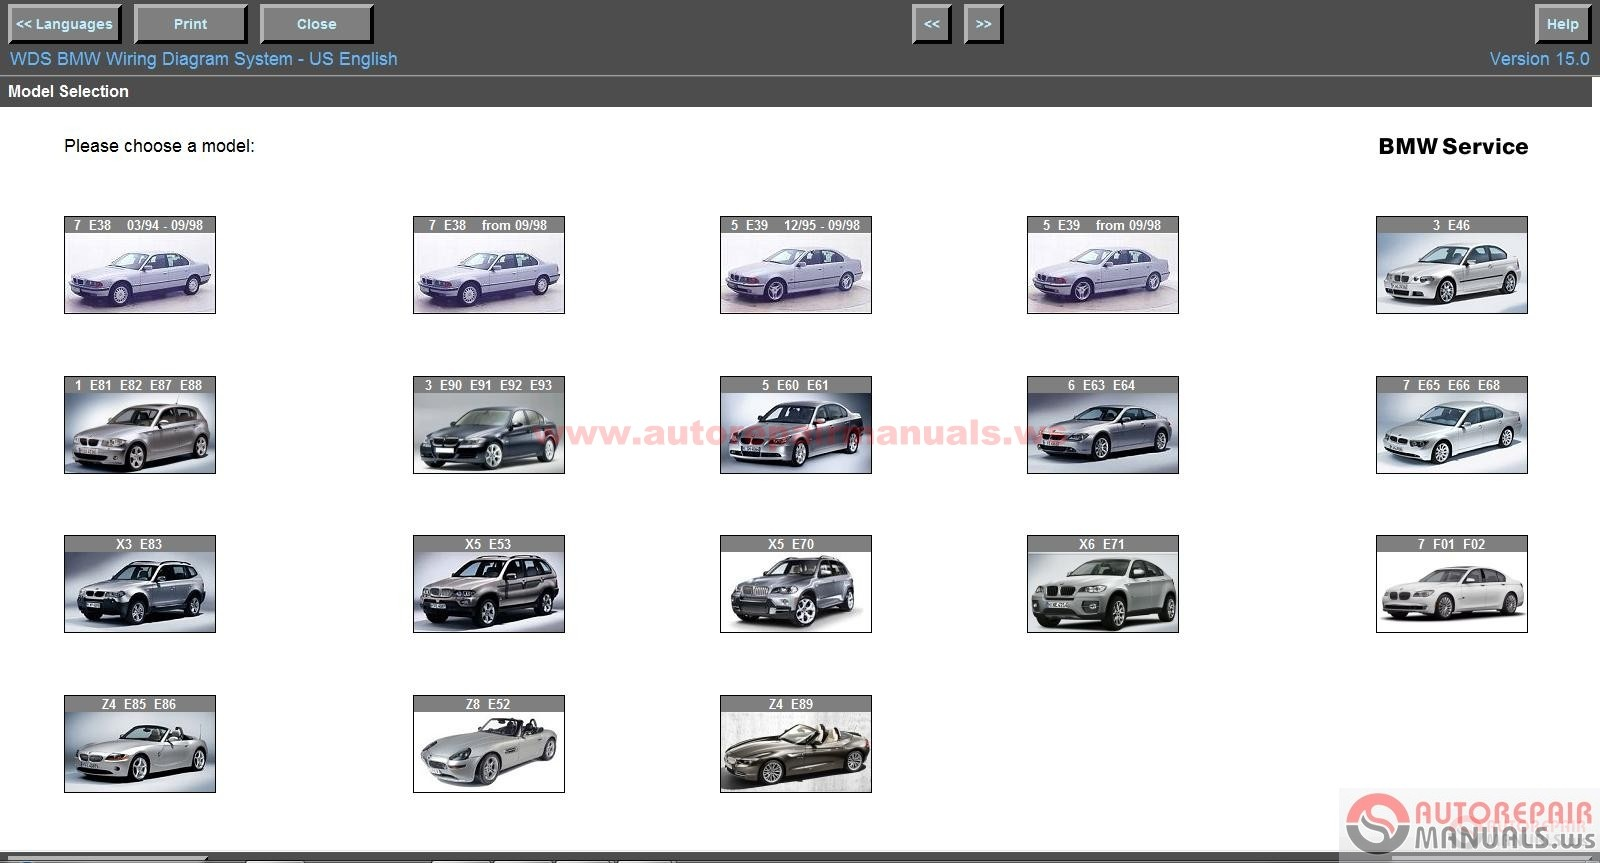 Wds Bmw Wiring Diagram System Download 38 Images Free V15 And Mini V7 System3 Auto Repair Click Here